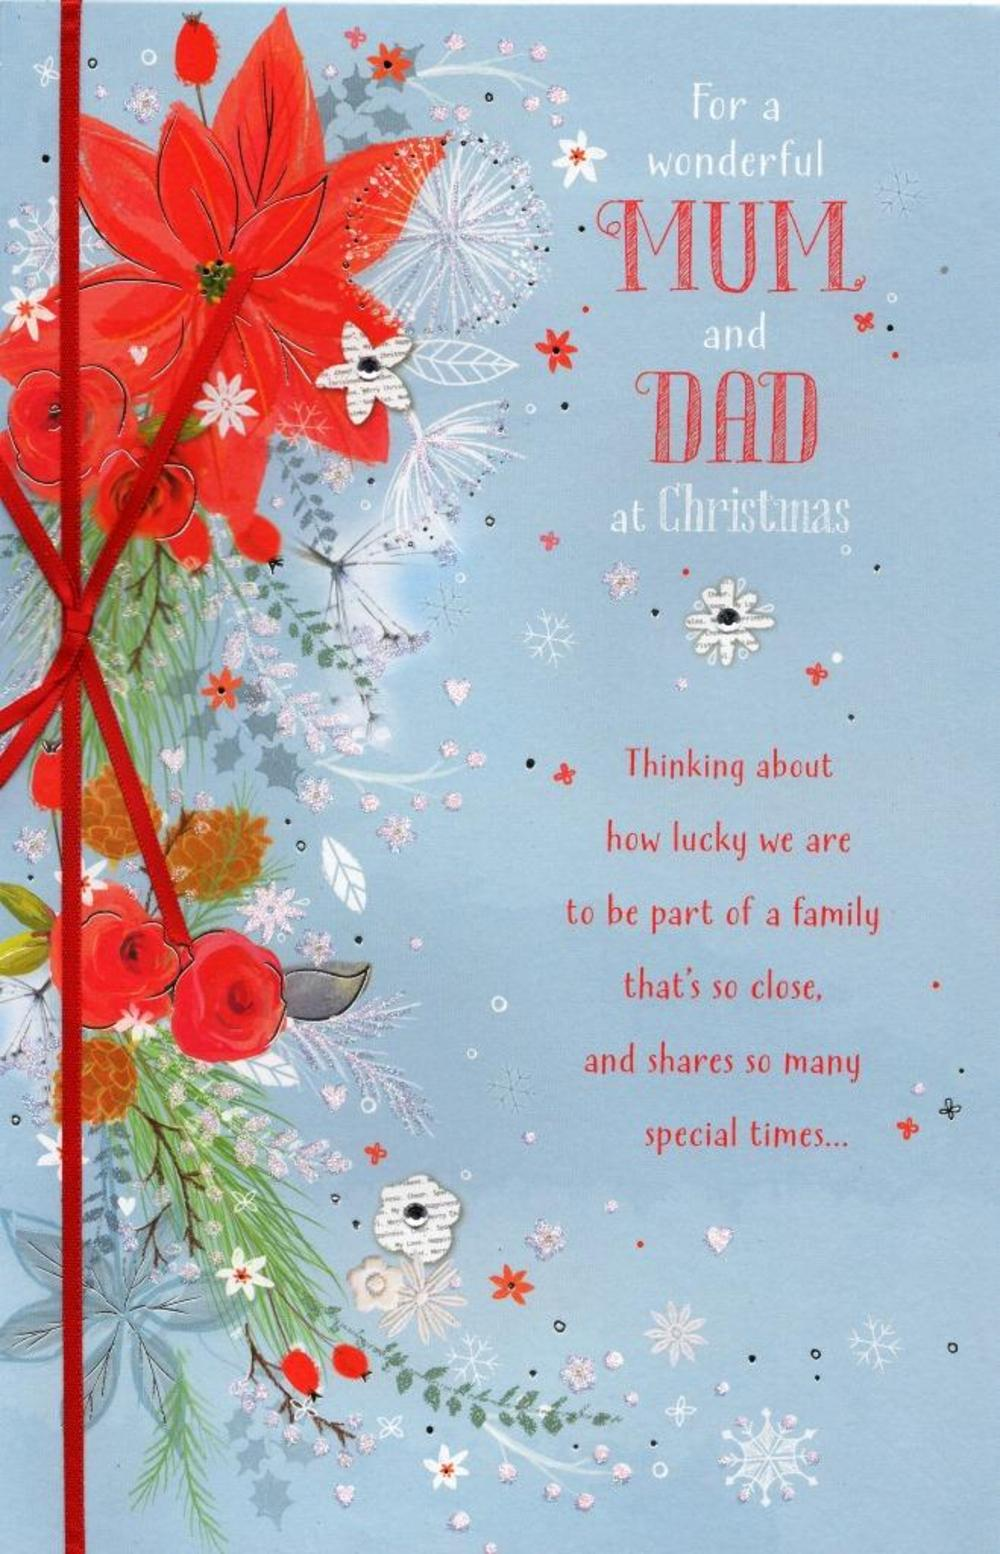 Mum dad traditional christmas greeting card cards love kates mum dad traditional christmas greeting card m4hsunfo